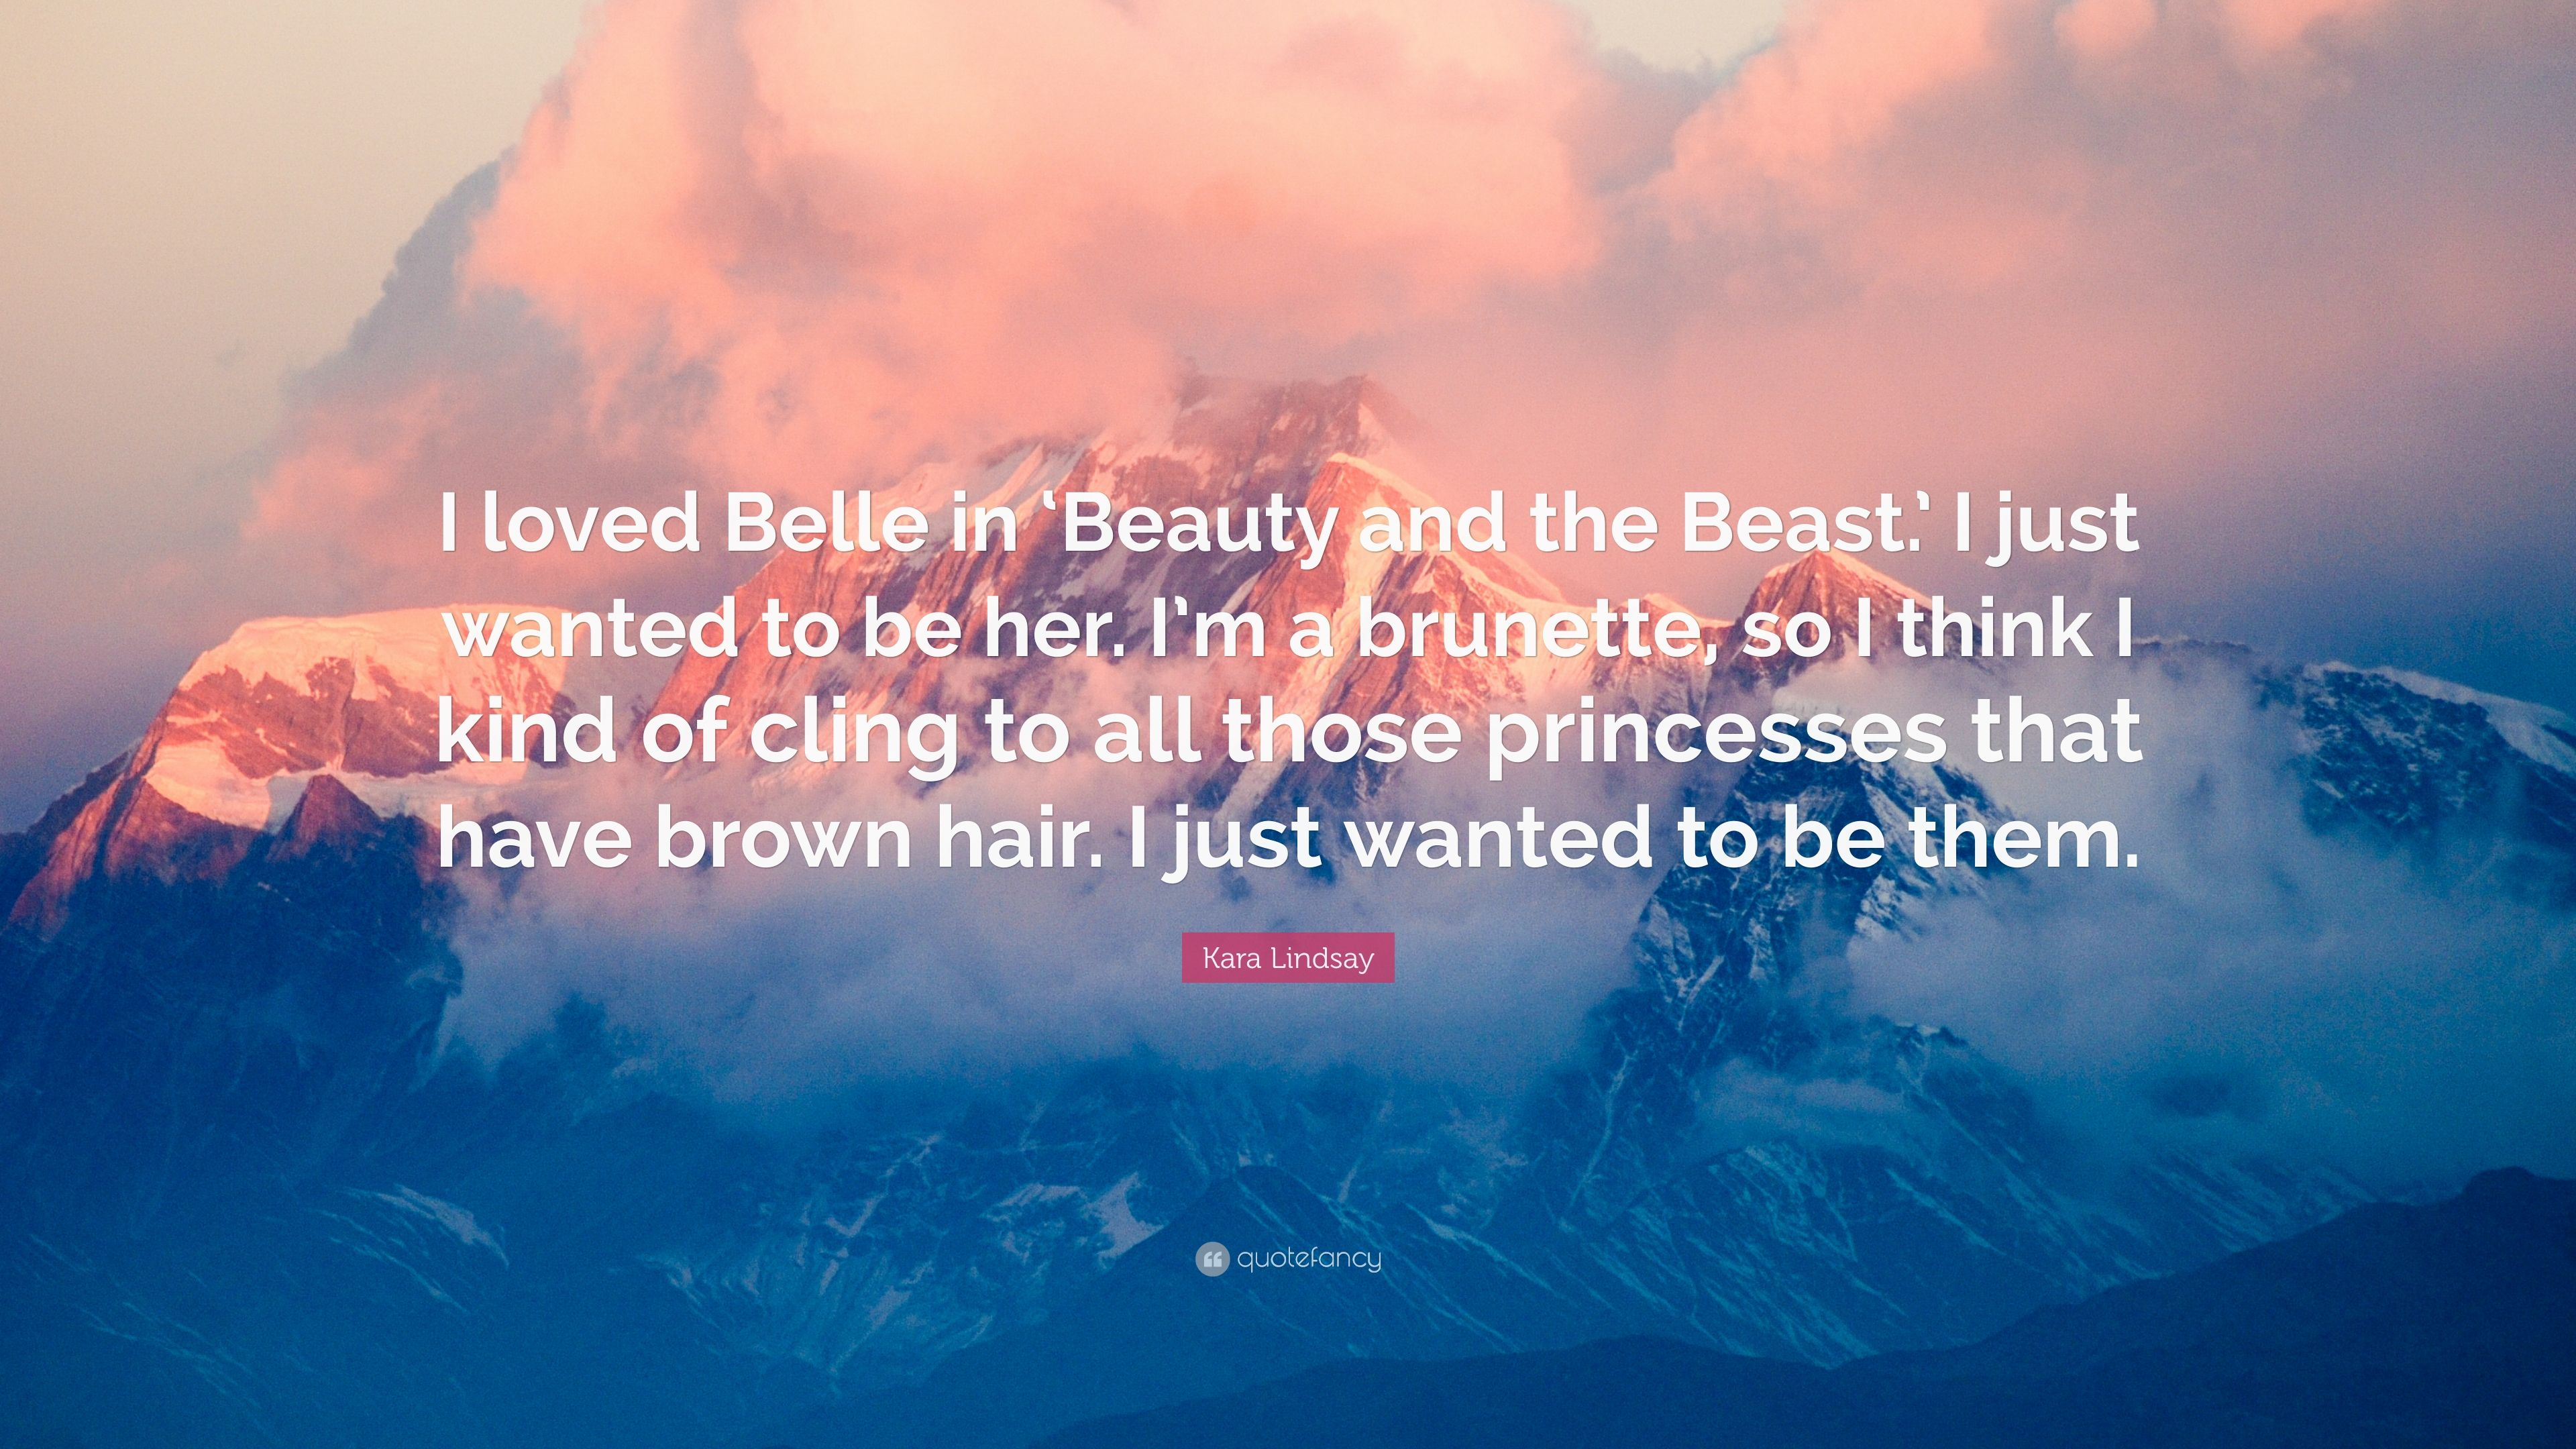 Beauty And The Beast Quote Wallpaper Kara Lindsay Quote I Loved Belle In Beauty And The